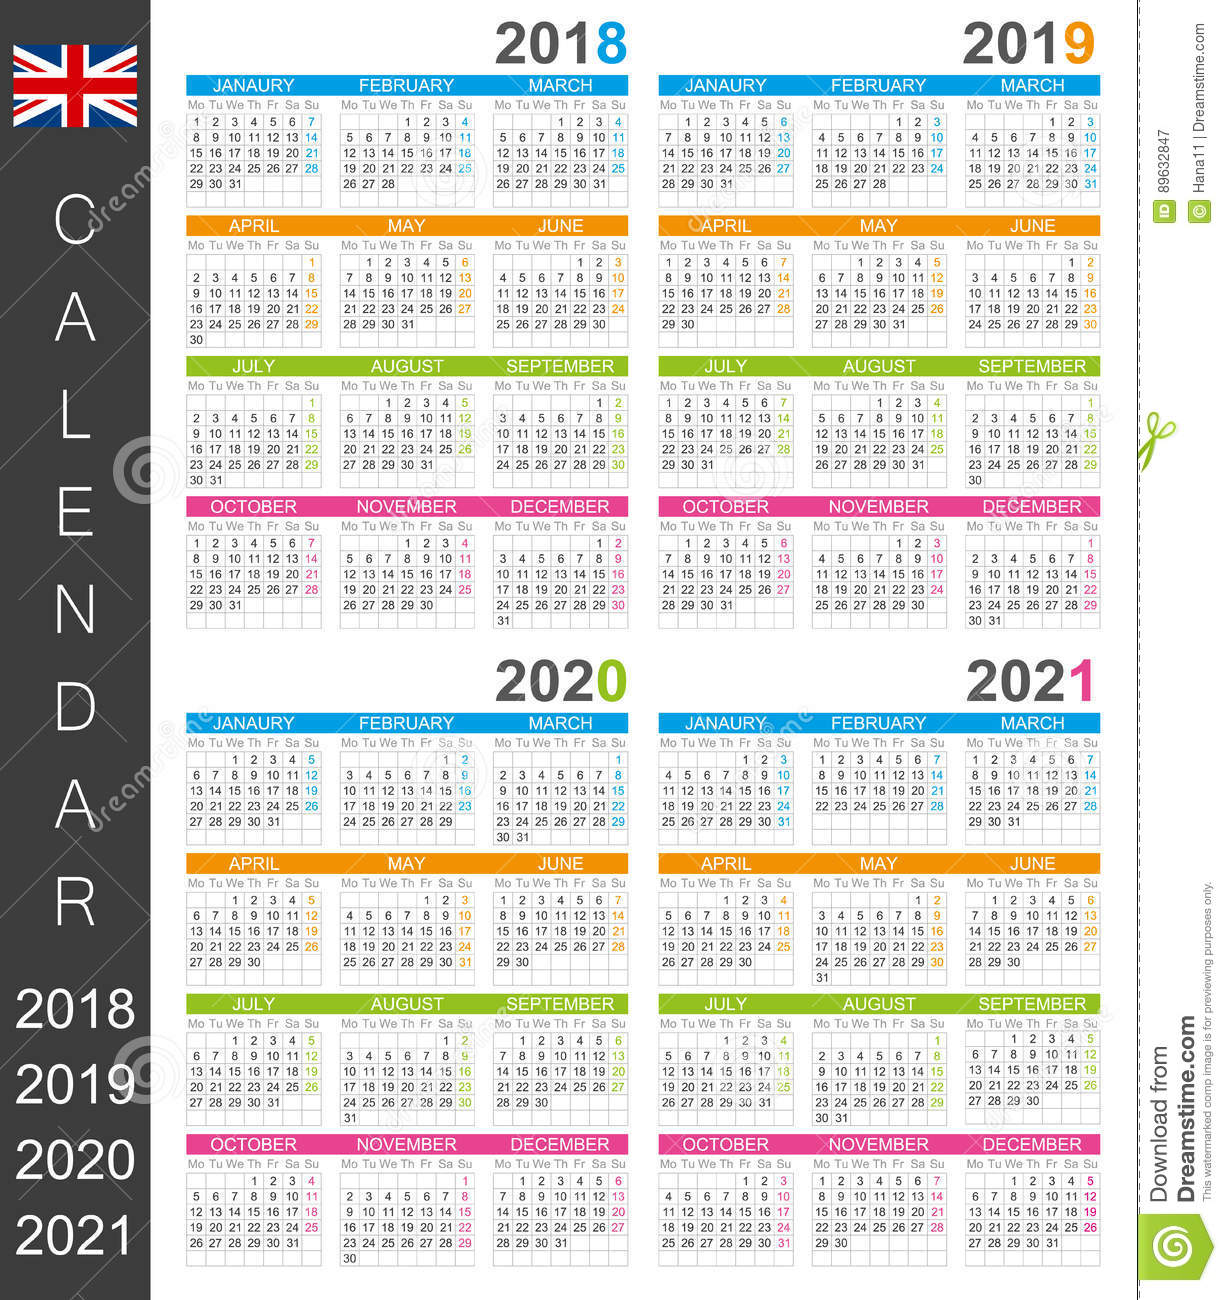 Calendrier 2018 2021 Calendrier 2018 2021 illustration de vecteur. Illustration du 2018